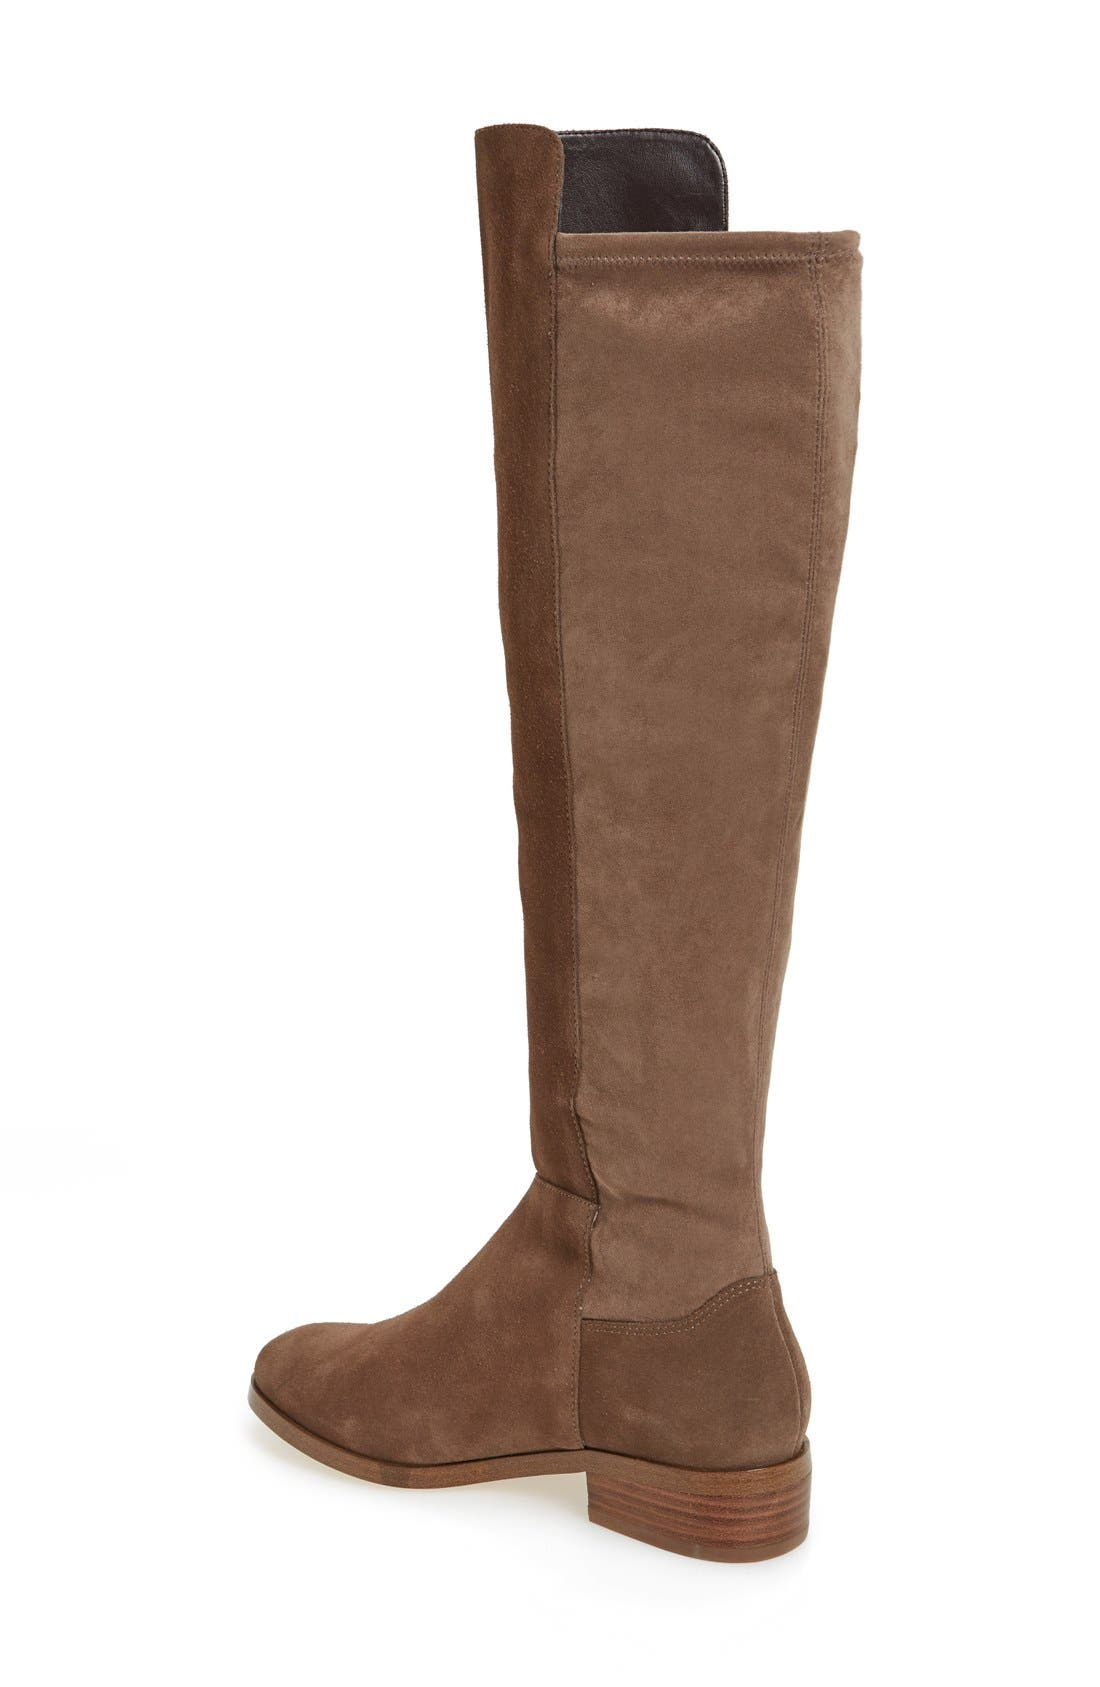 Calypso Over the Knee Boot,                             Alternate thumbnail 2, color,                             Taupe Suede